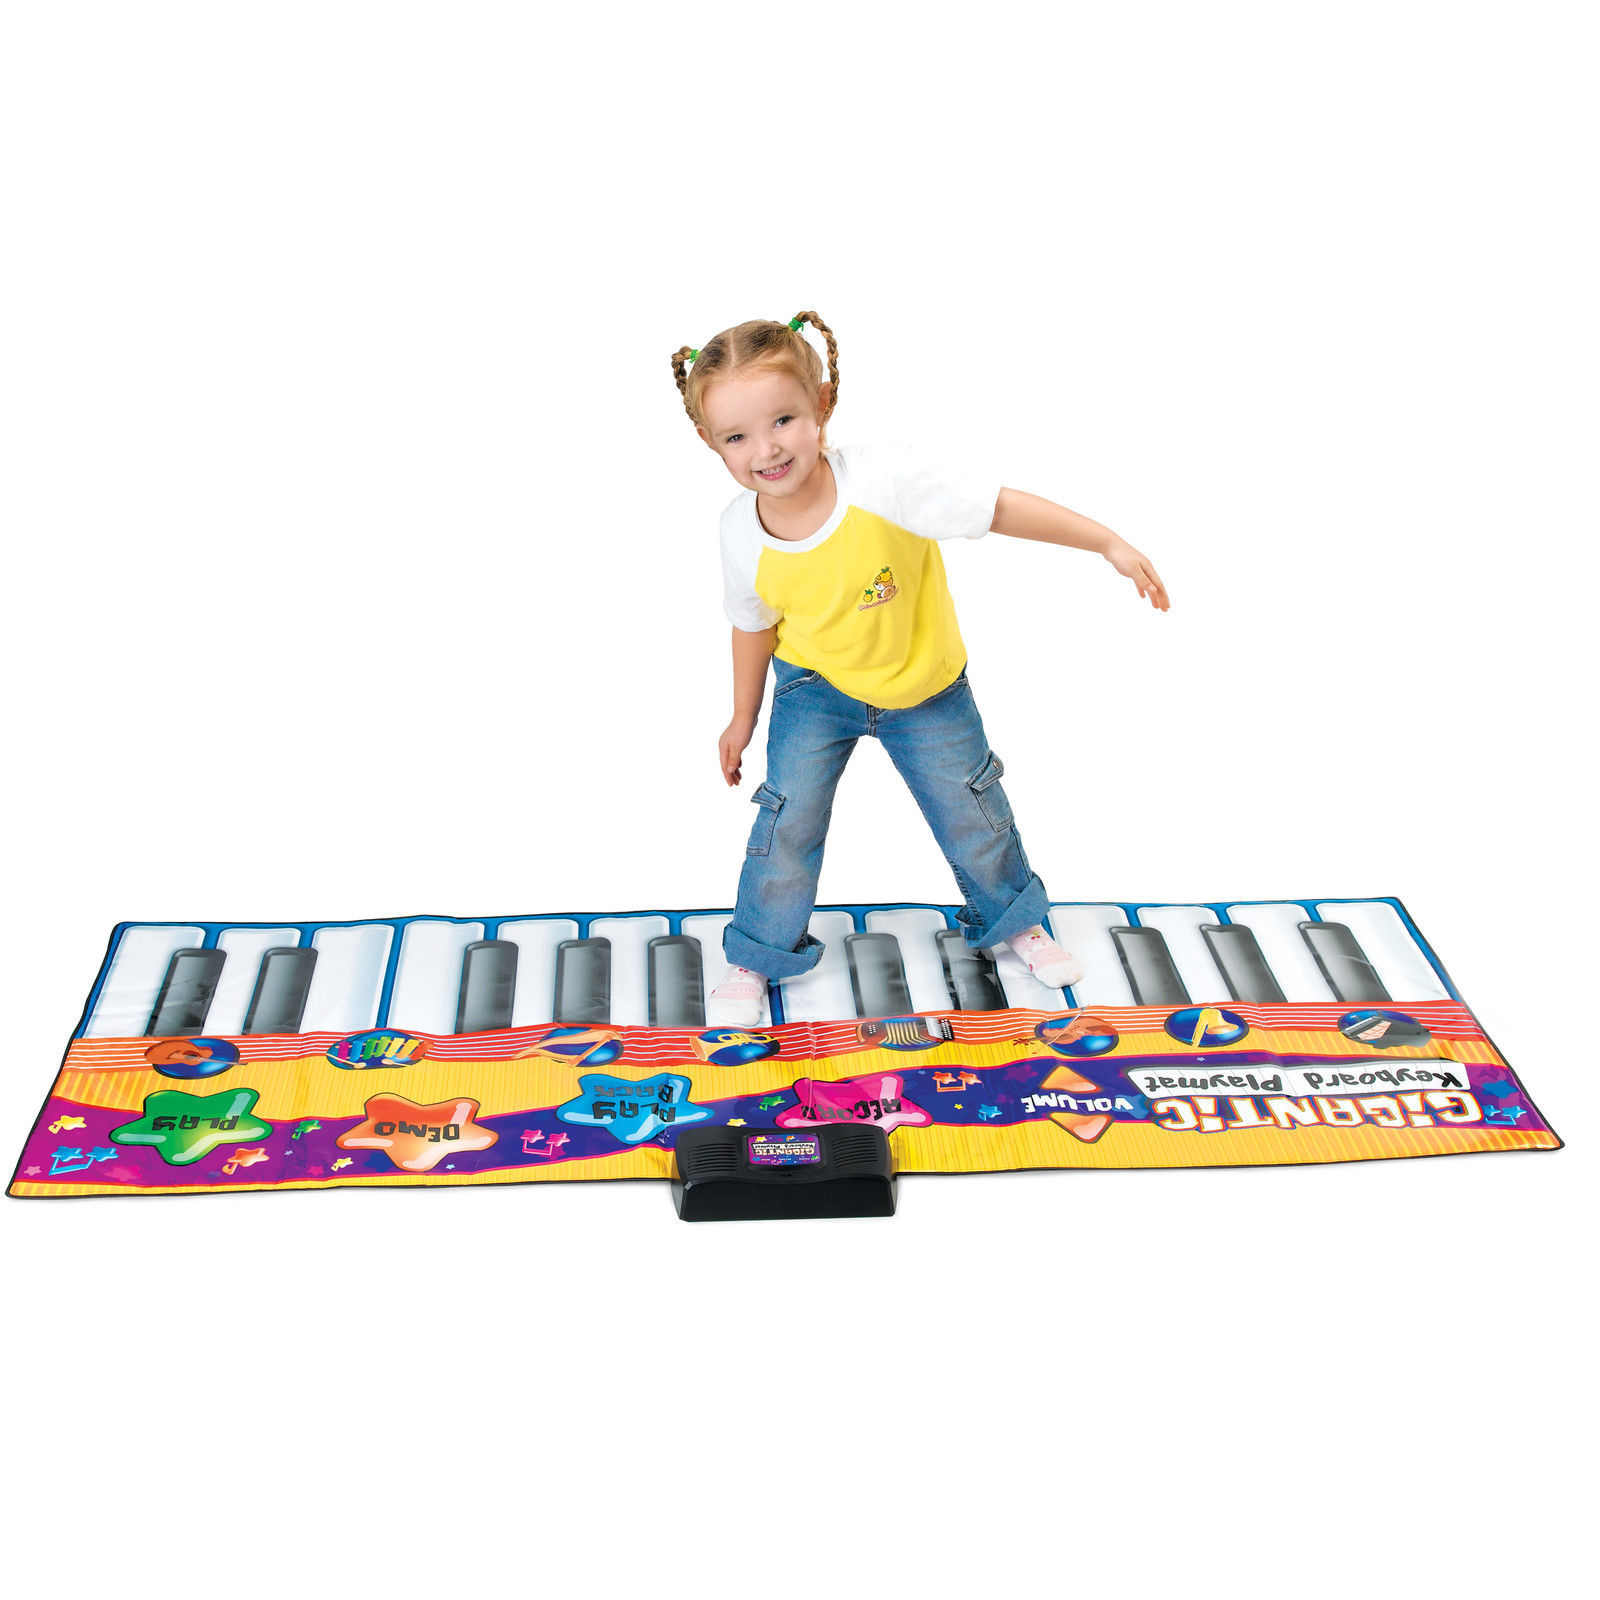 Toys For Dance : Kids toy big keyboard piano fun dance and similar items